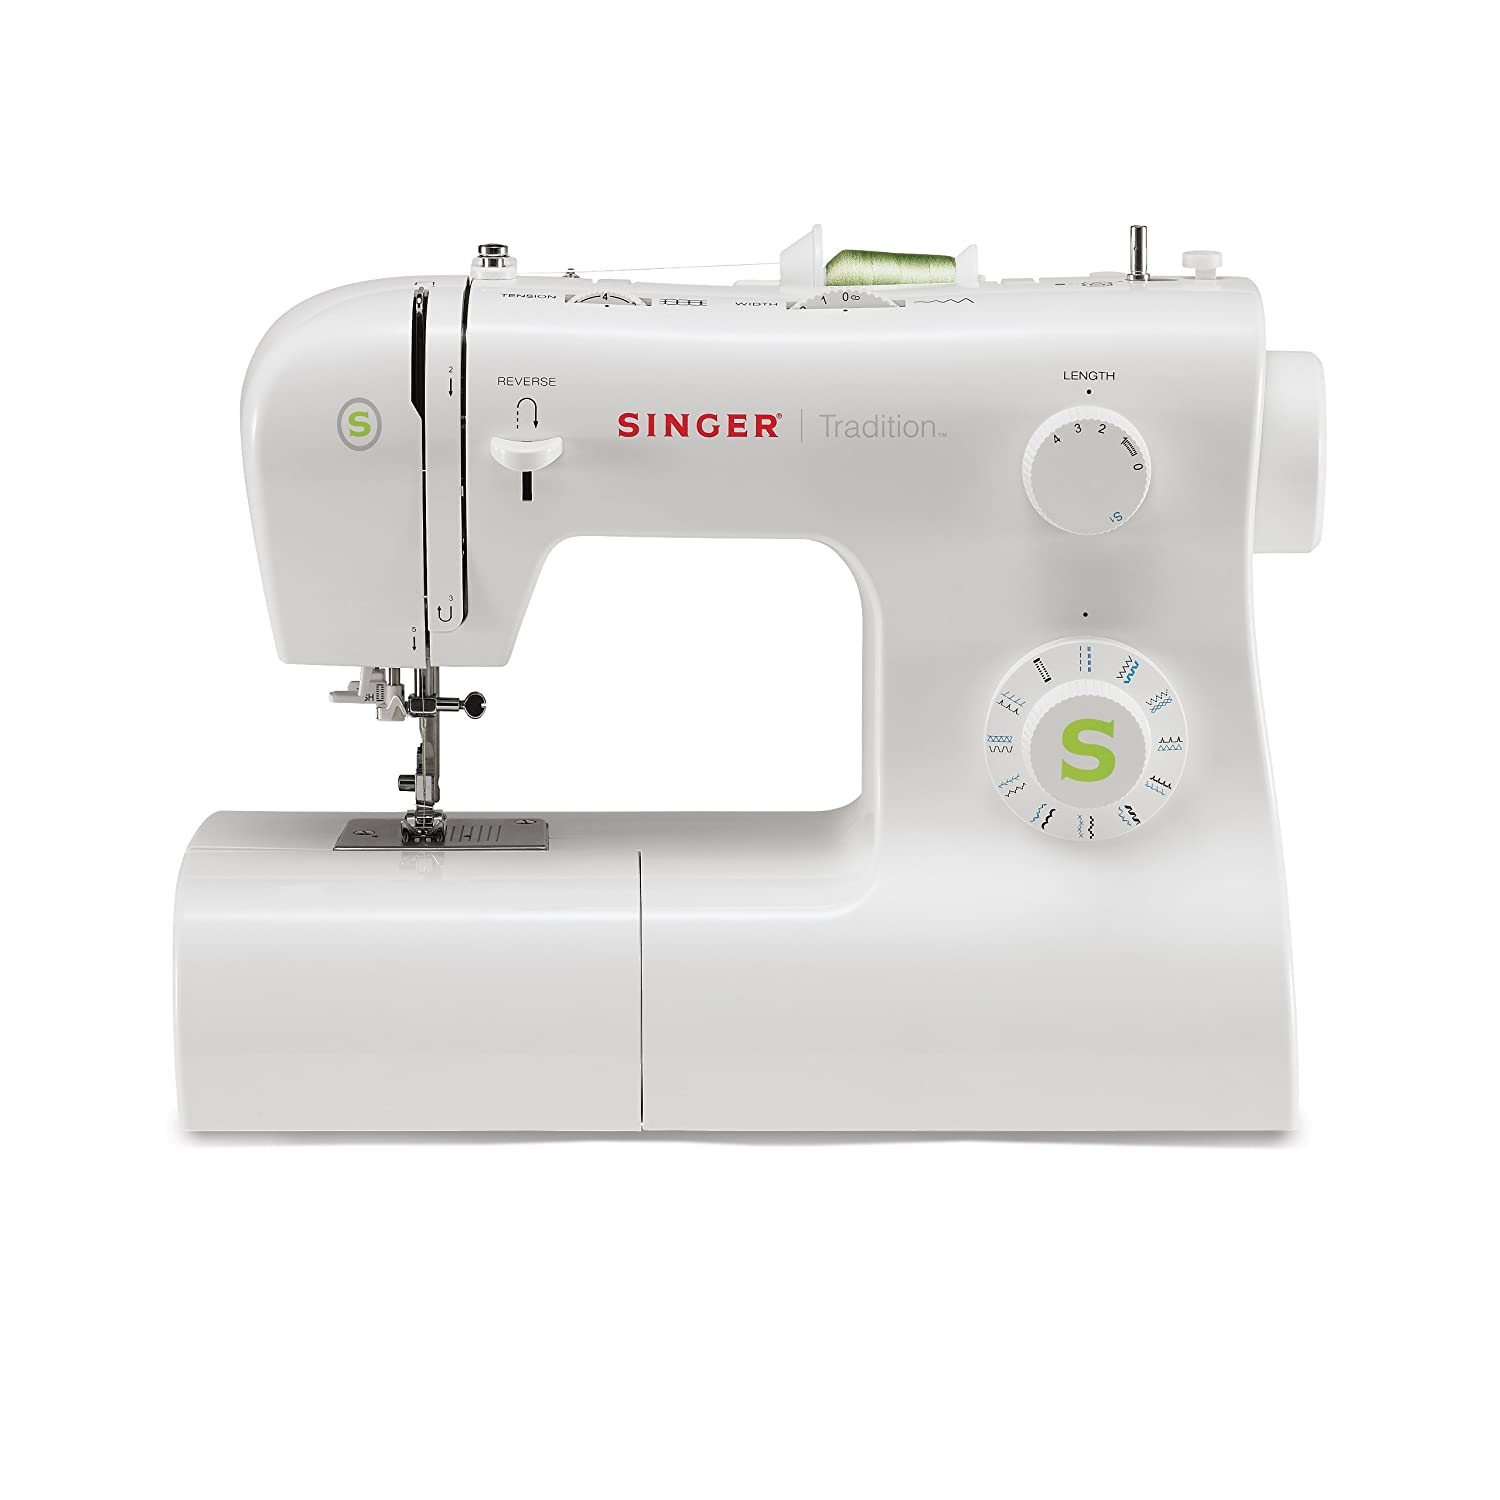 Amazon.com: Singer | Tradition 2277 Sewing Machine including 23 Built-In  Stitches, Automatic Needle Threader, Snap-On Presser Feet, Automatic  Tension, ...